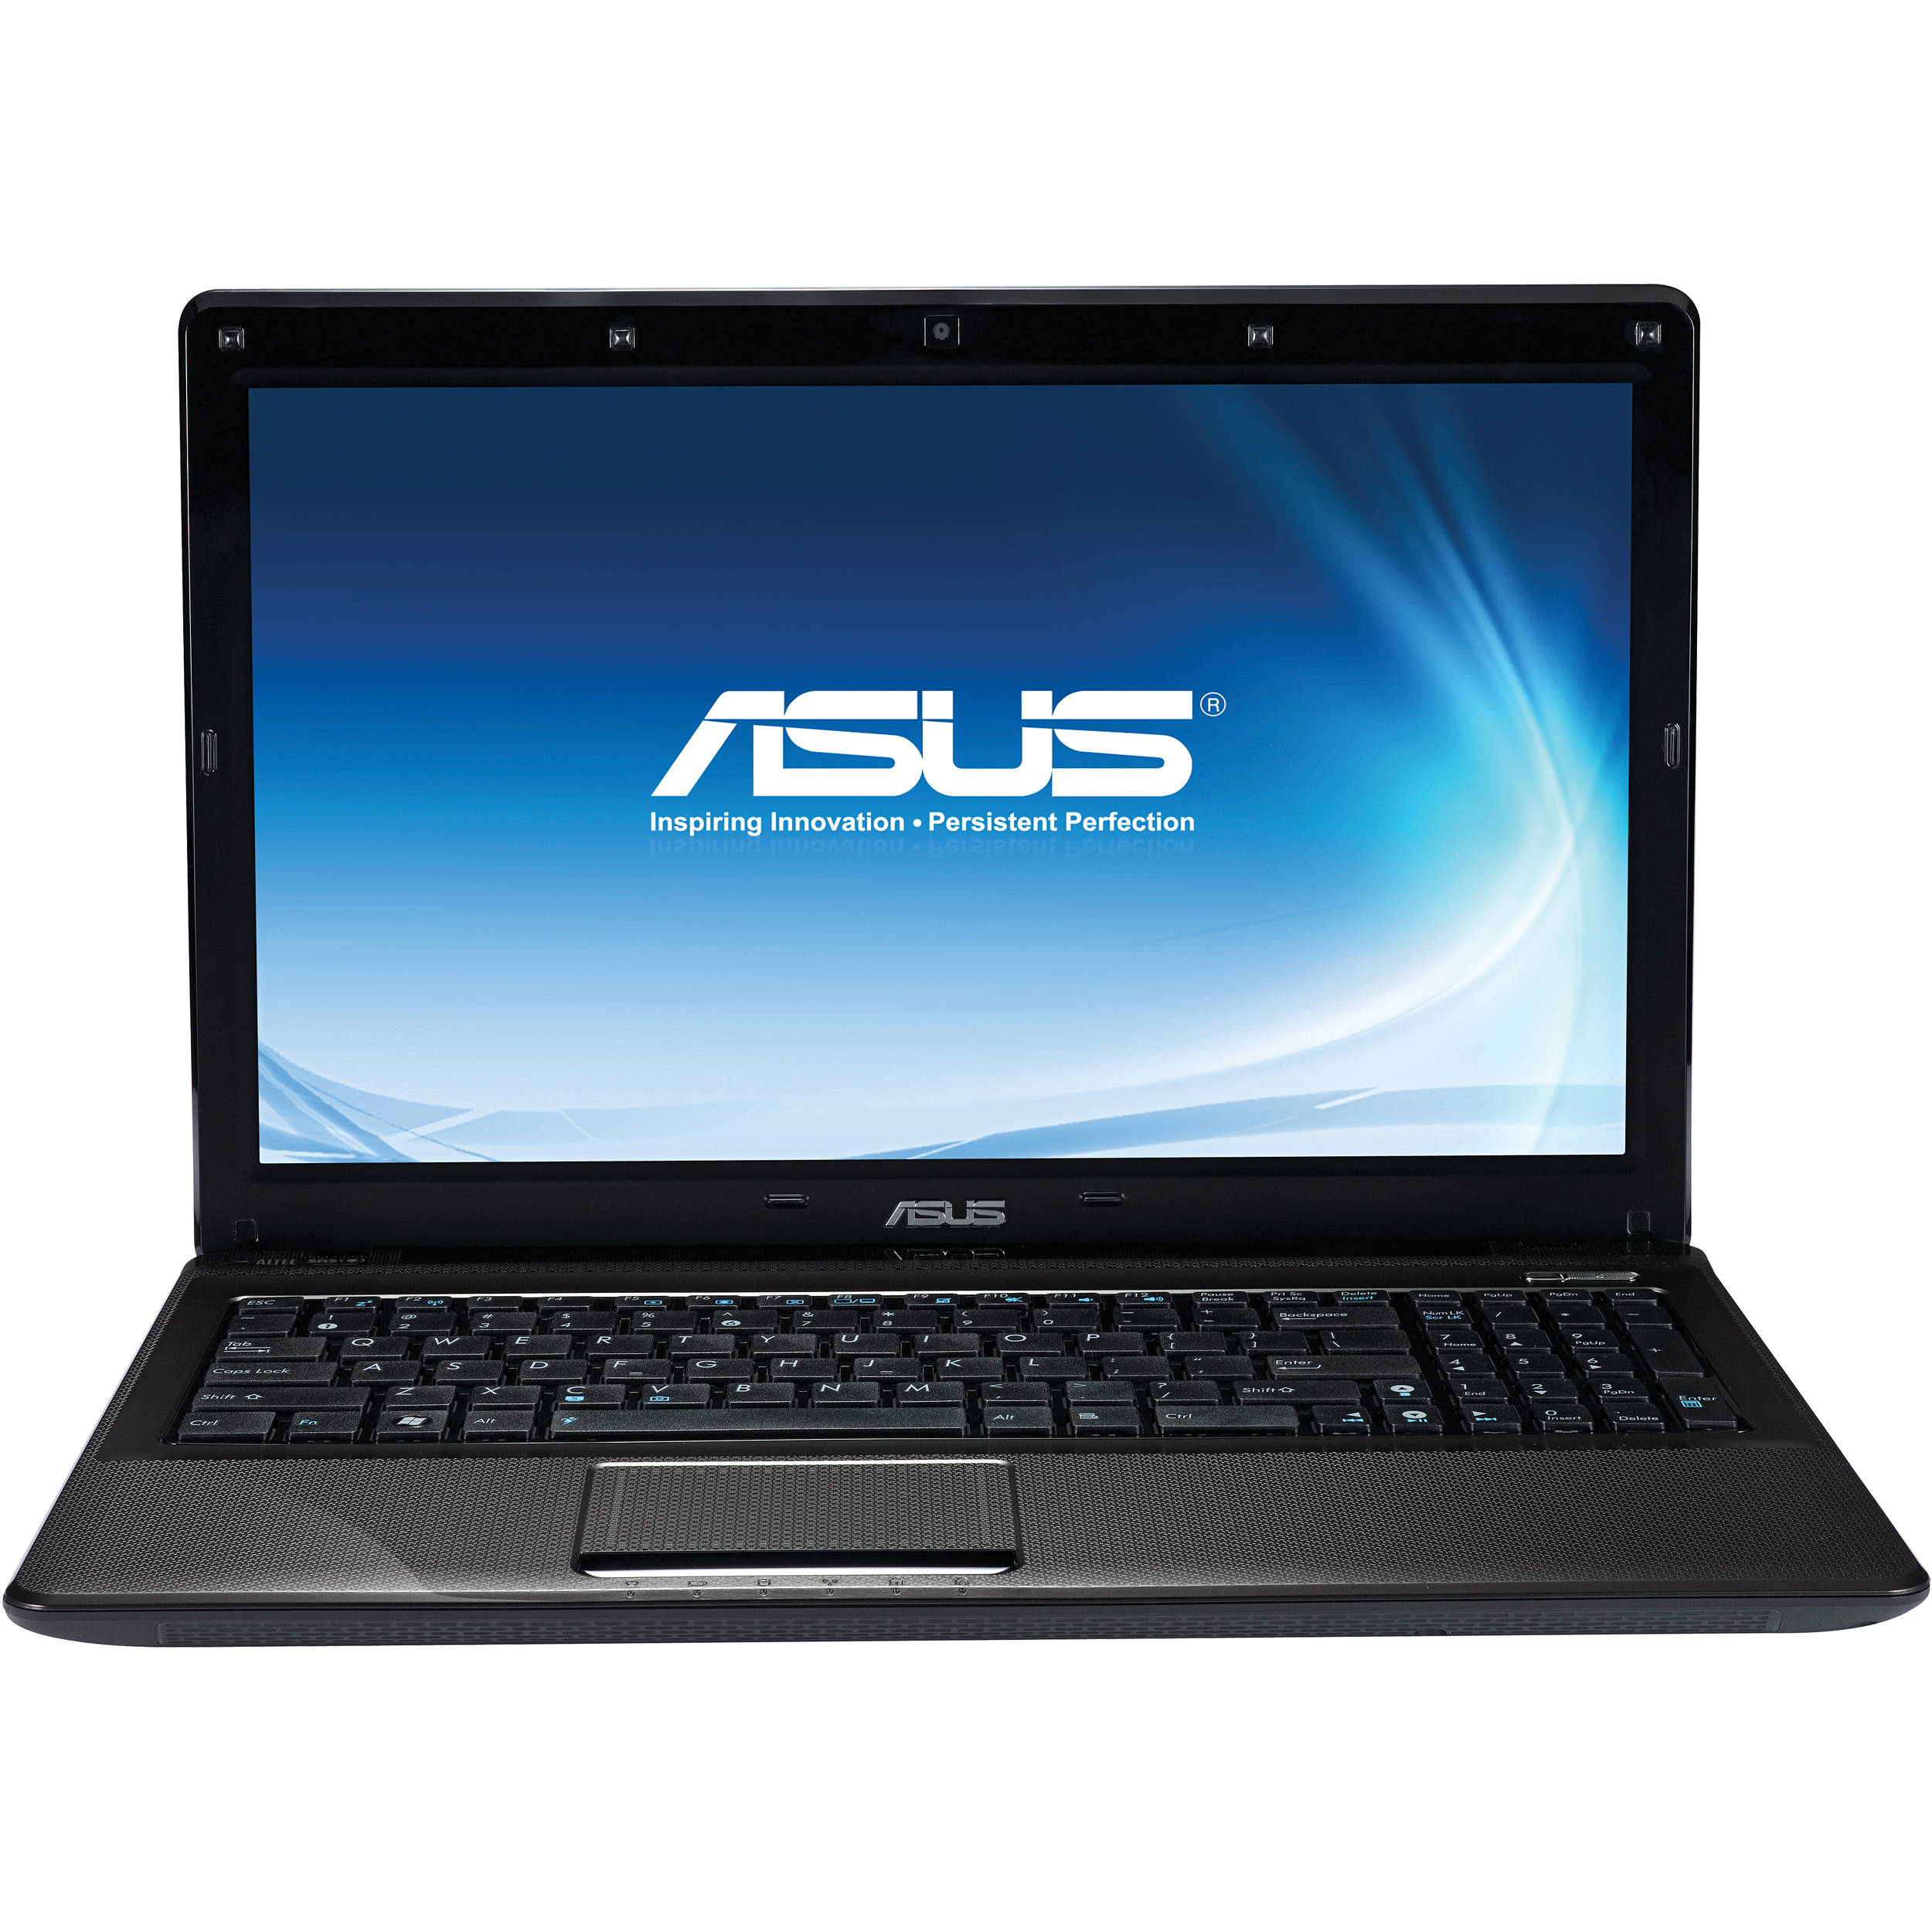 ASUS K52F NOTEBOOK INTEL GRAPHICS DOWNLOAD DRIVER